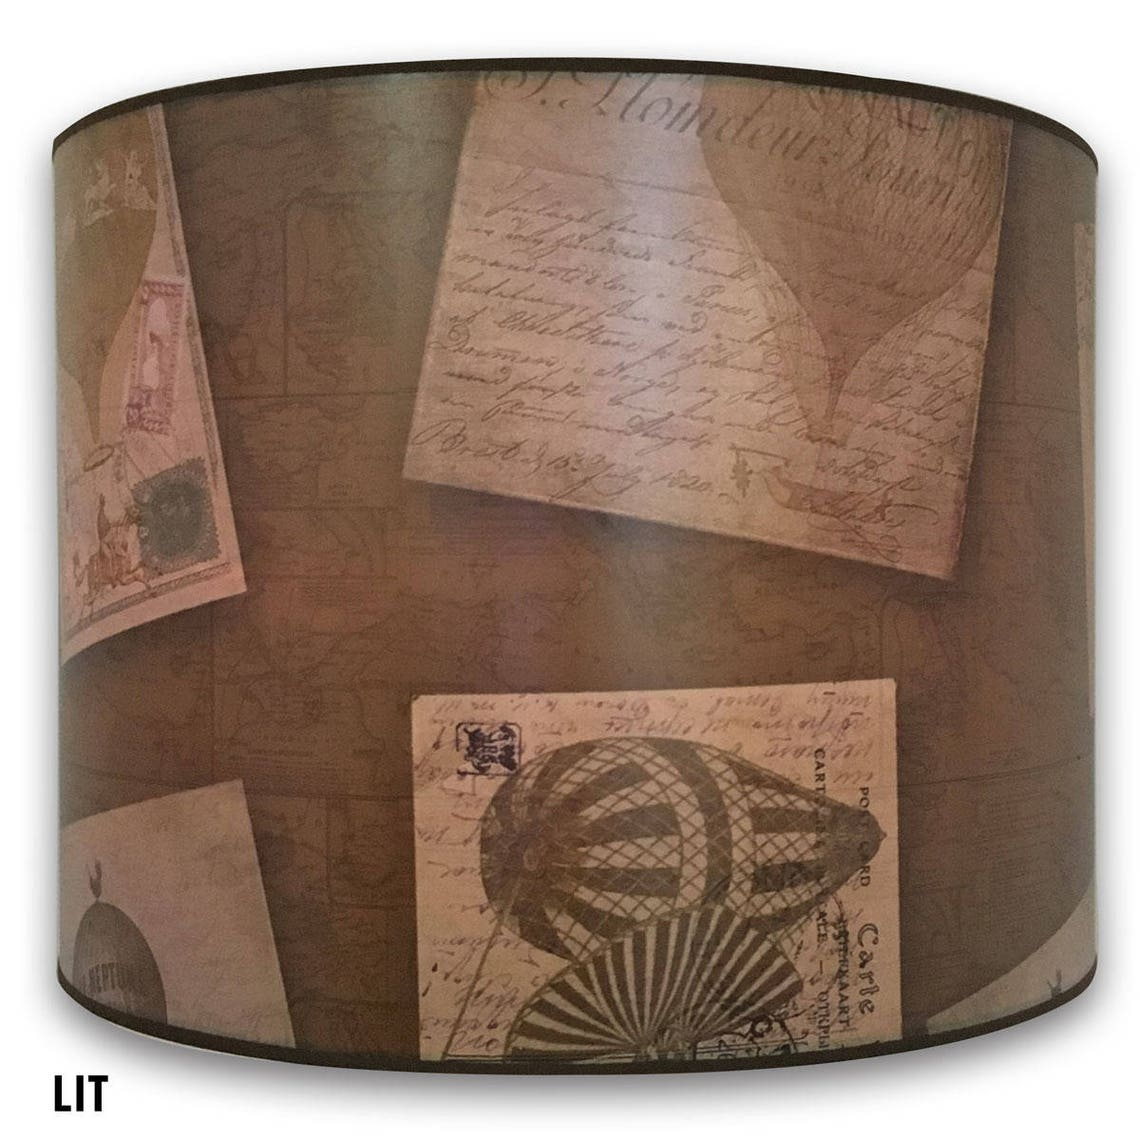 Royal Designs Decorative Lamp Shade - Made in USA - Vintage Post Card Design - Eclairage